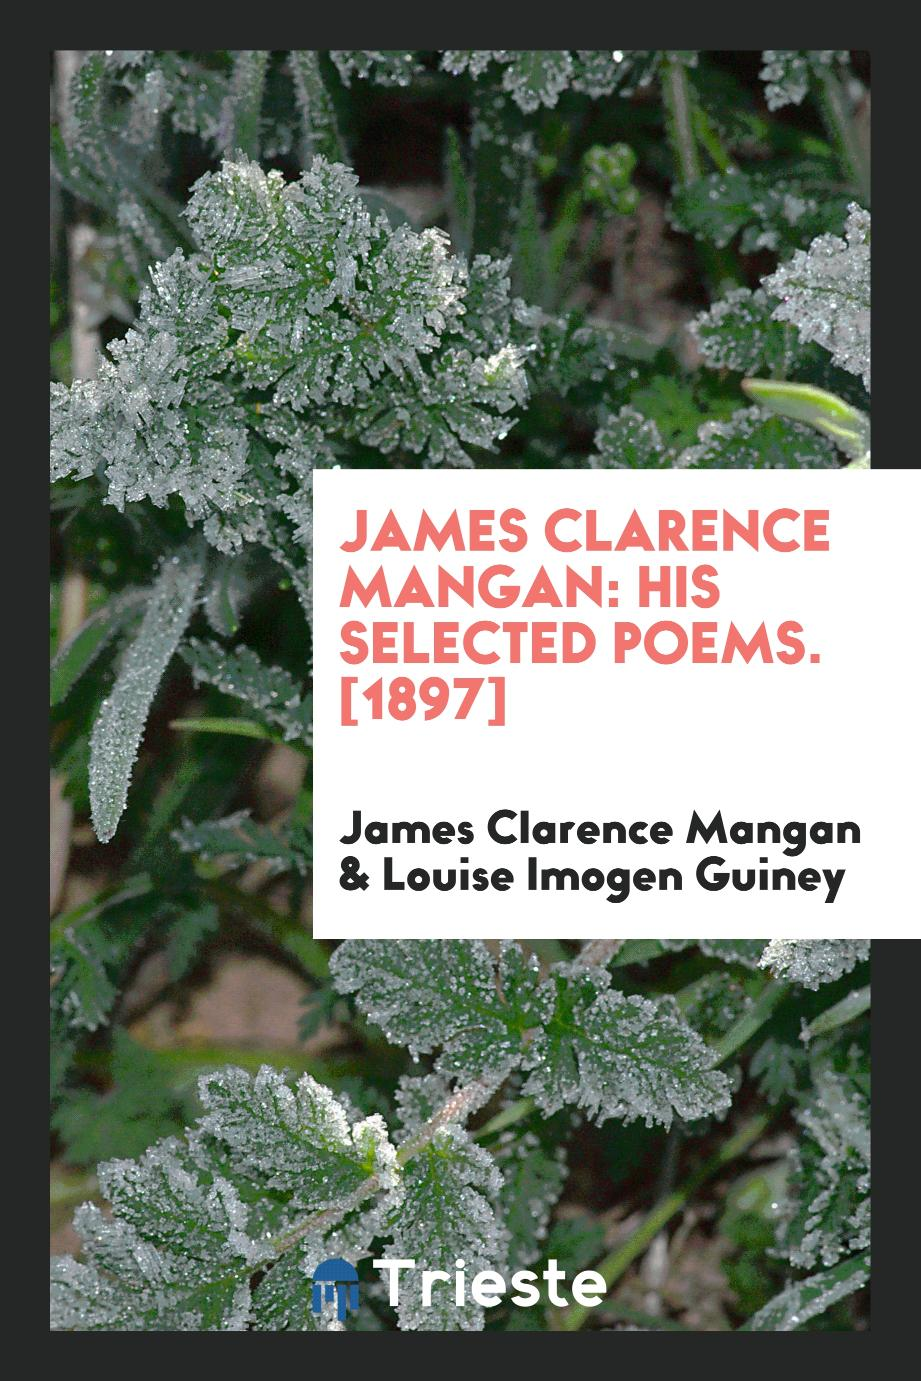 James Clarence Mangan: His Selected Poems. [1897]